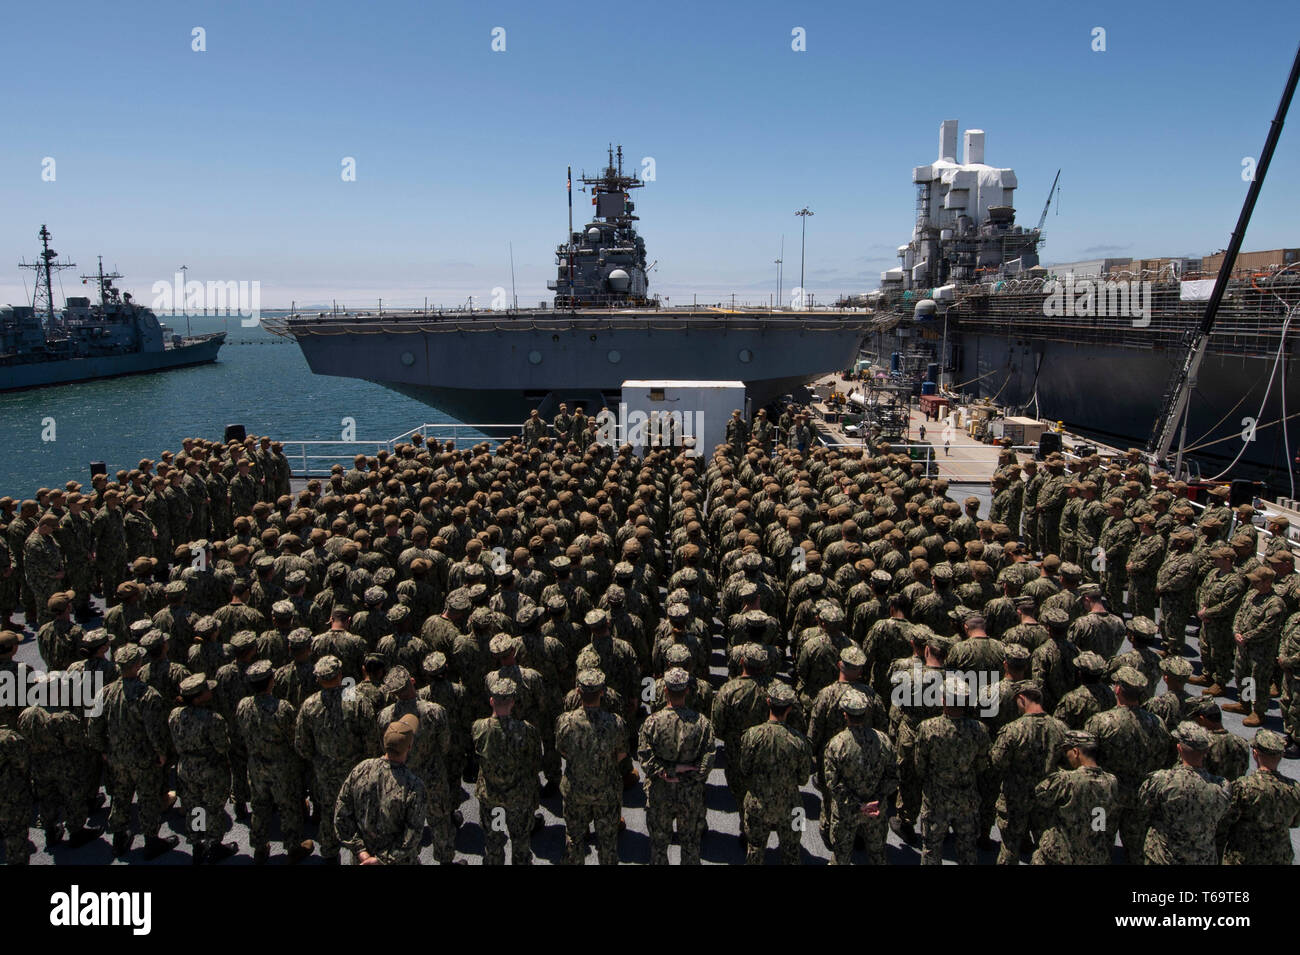 SAN DIEGO (April 26, 2019) The crew of the amphibious assault ship USS Bonhomme Richard (LHD 6), observes as Rear Adm. Cedric Pringle, Commander, Expeditionary Strike Group (ESG) 3, awards Religious Programs Specialist Seaman David Miller, from Salem, N.H., assigned to Bonhomme Richard, with the Navy and Marine Corps Commendation Medal during an awards ceremony on the roof of the ship's barge. Miller was awarded for his efforts in apprehending a woman threatening a church congregation on April 20, 2019. Bonhomme Richard is in its homeport of San Diego. (U.S. Navy photo by Mass Communication Sp Stock Photo